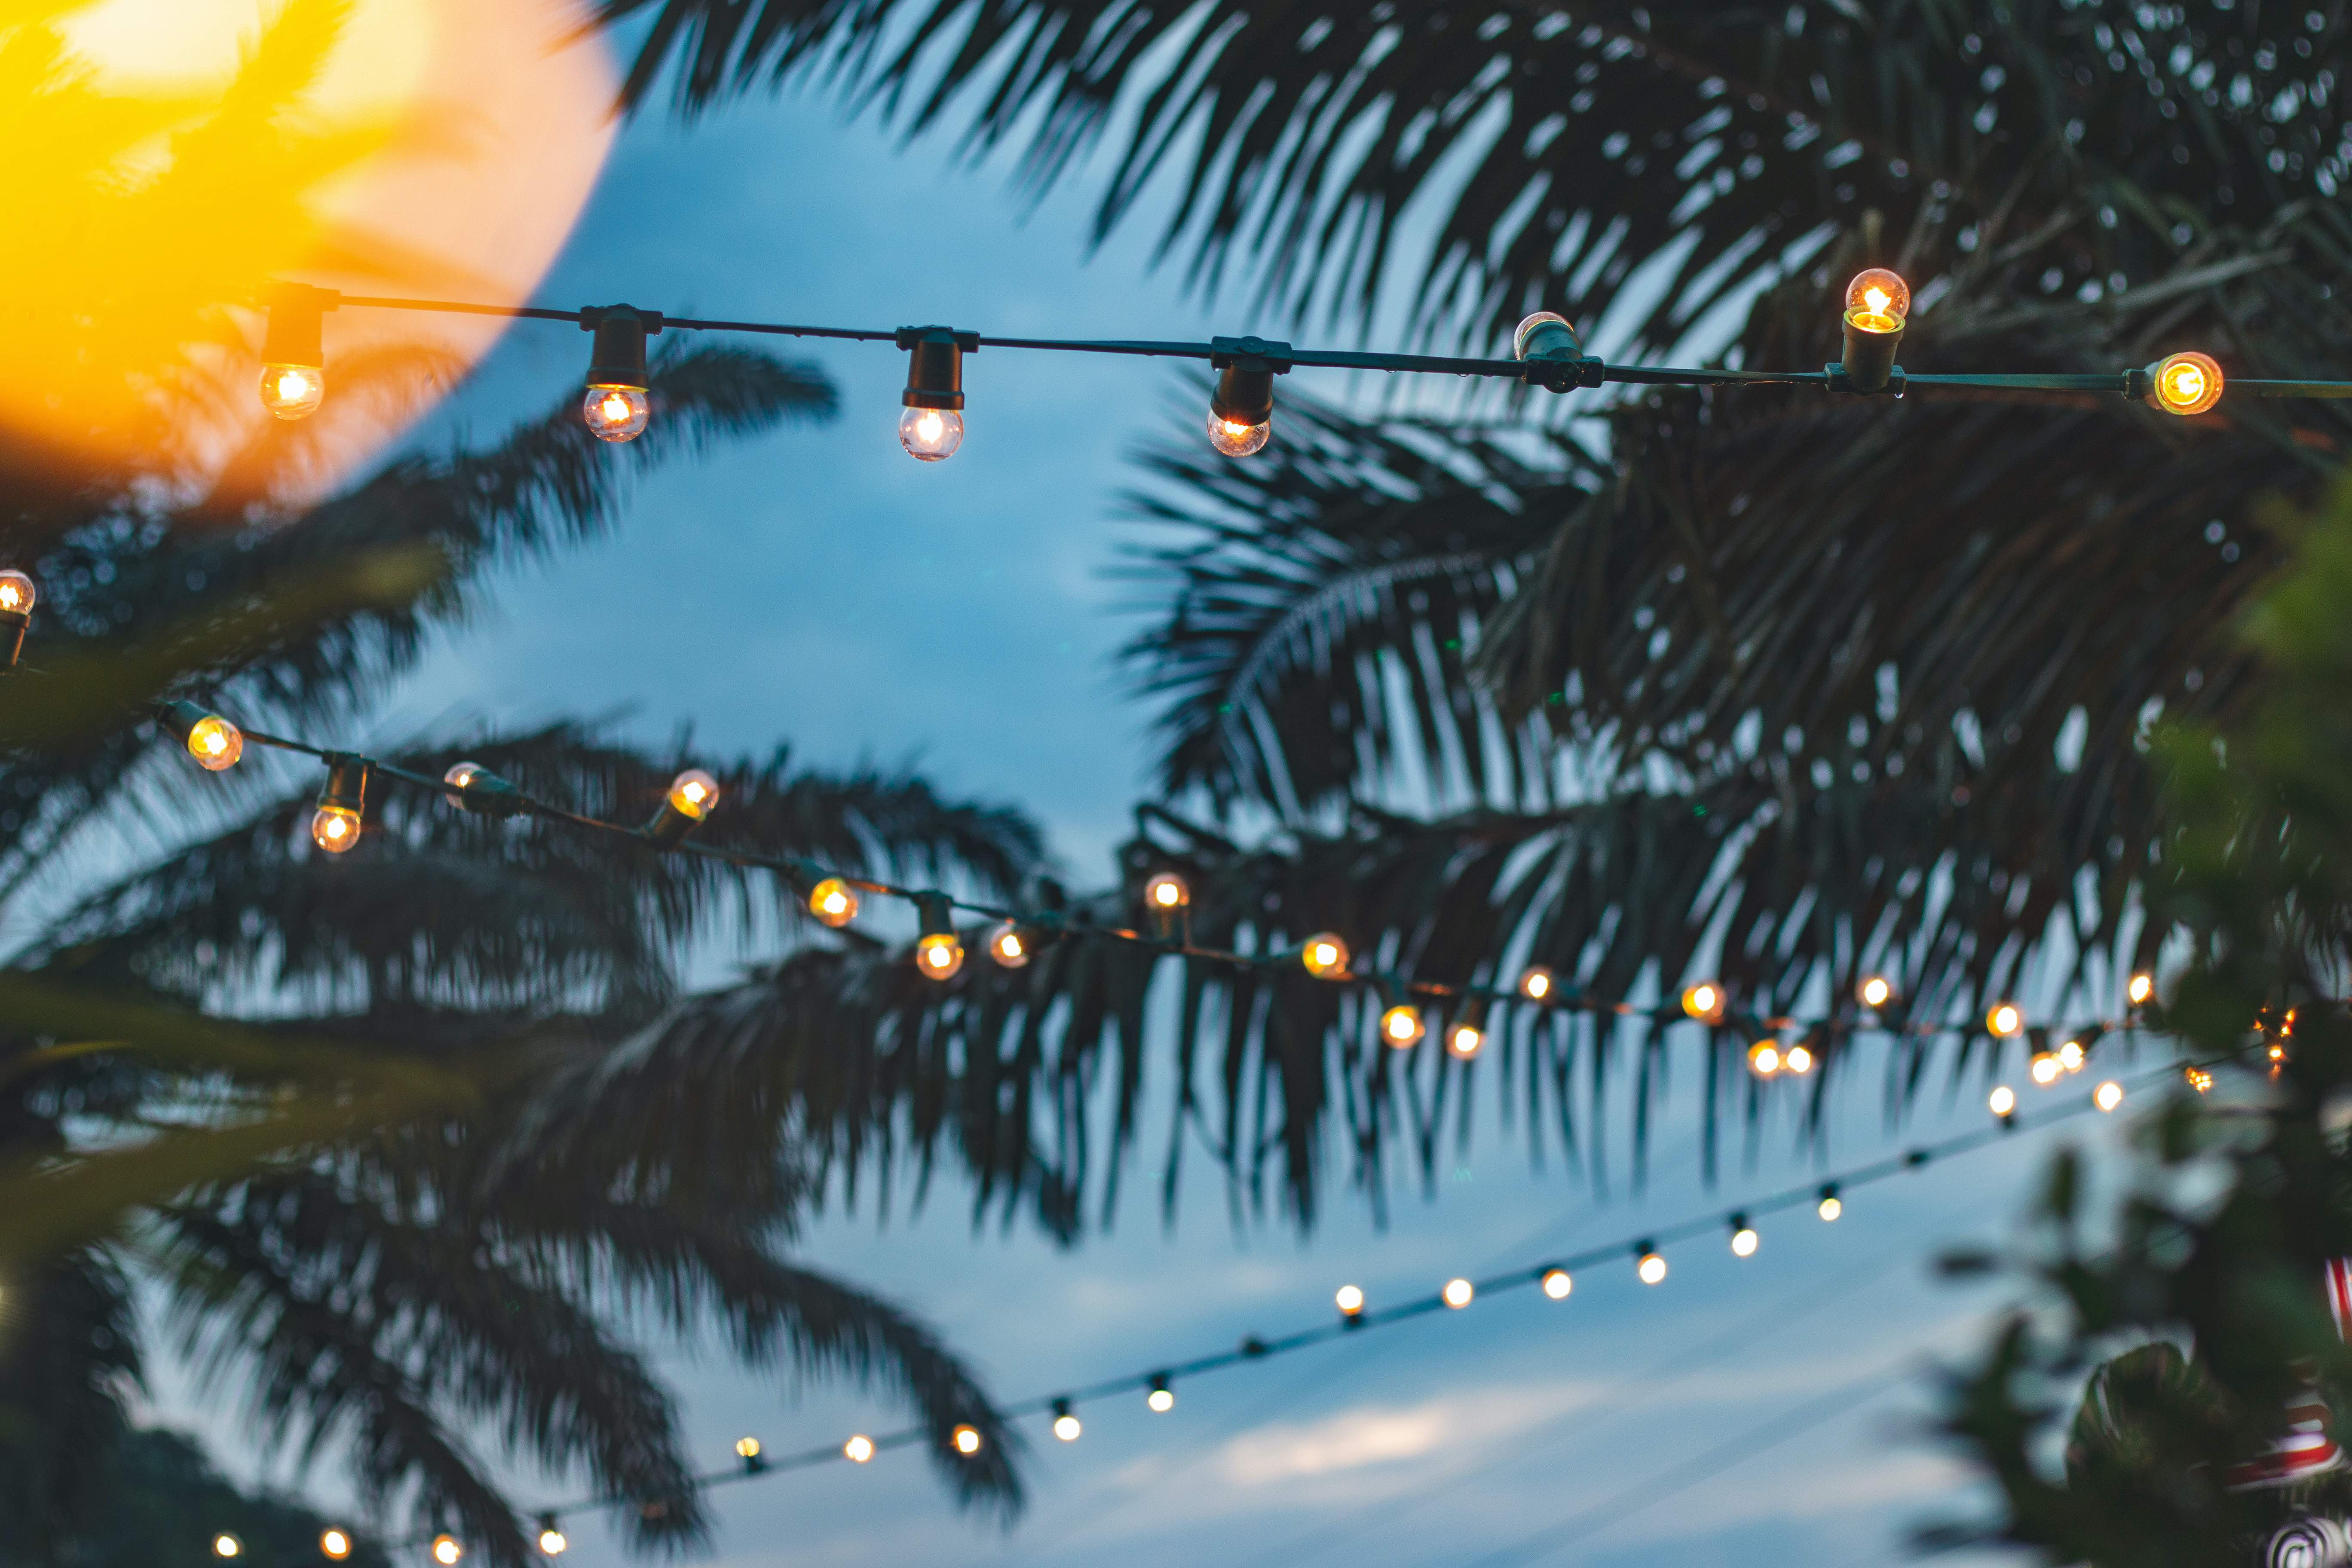 3 Qualities that Keep our Christmas Lights  Bright in Hot, Sunny Weather